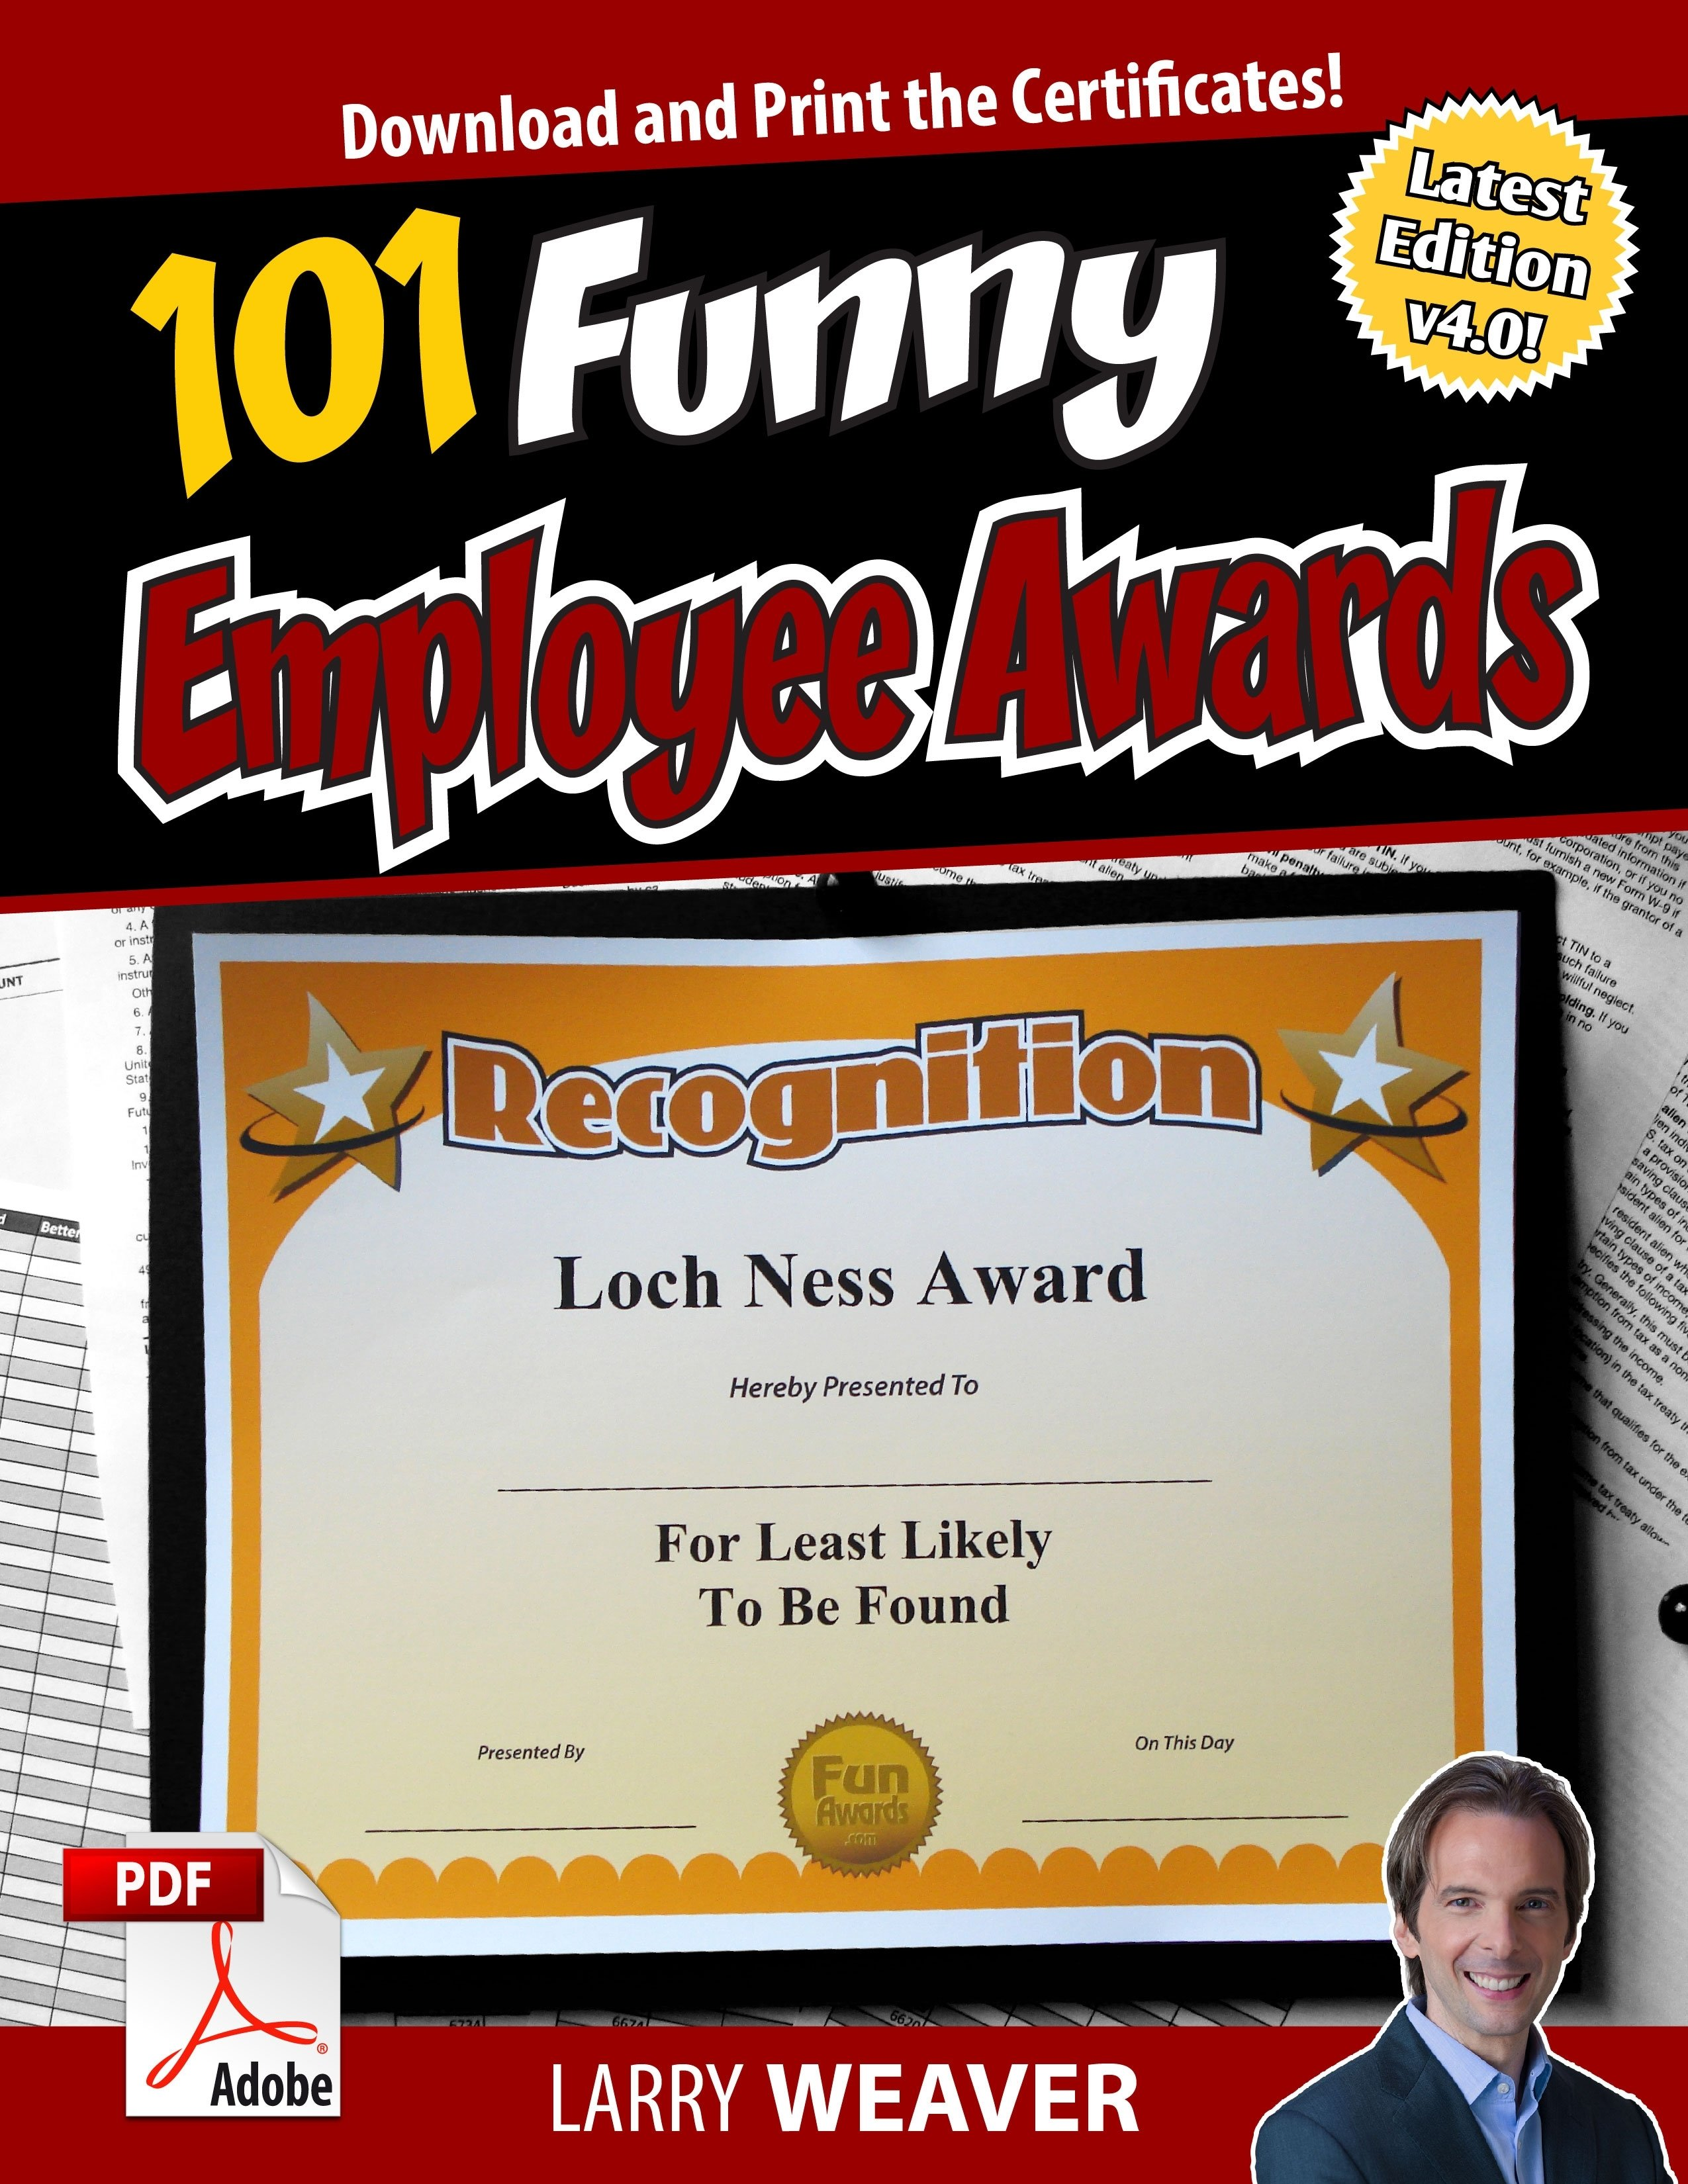 10 Beautiful Funny Award Ideas For Friends about larry weaver creator of fun awards 2021